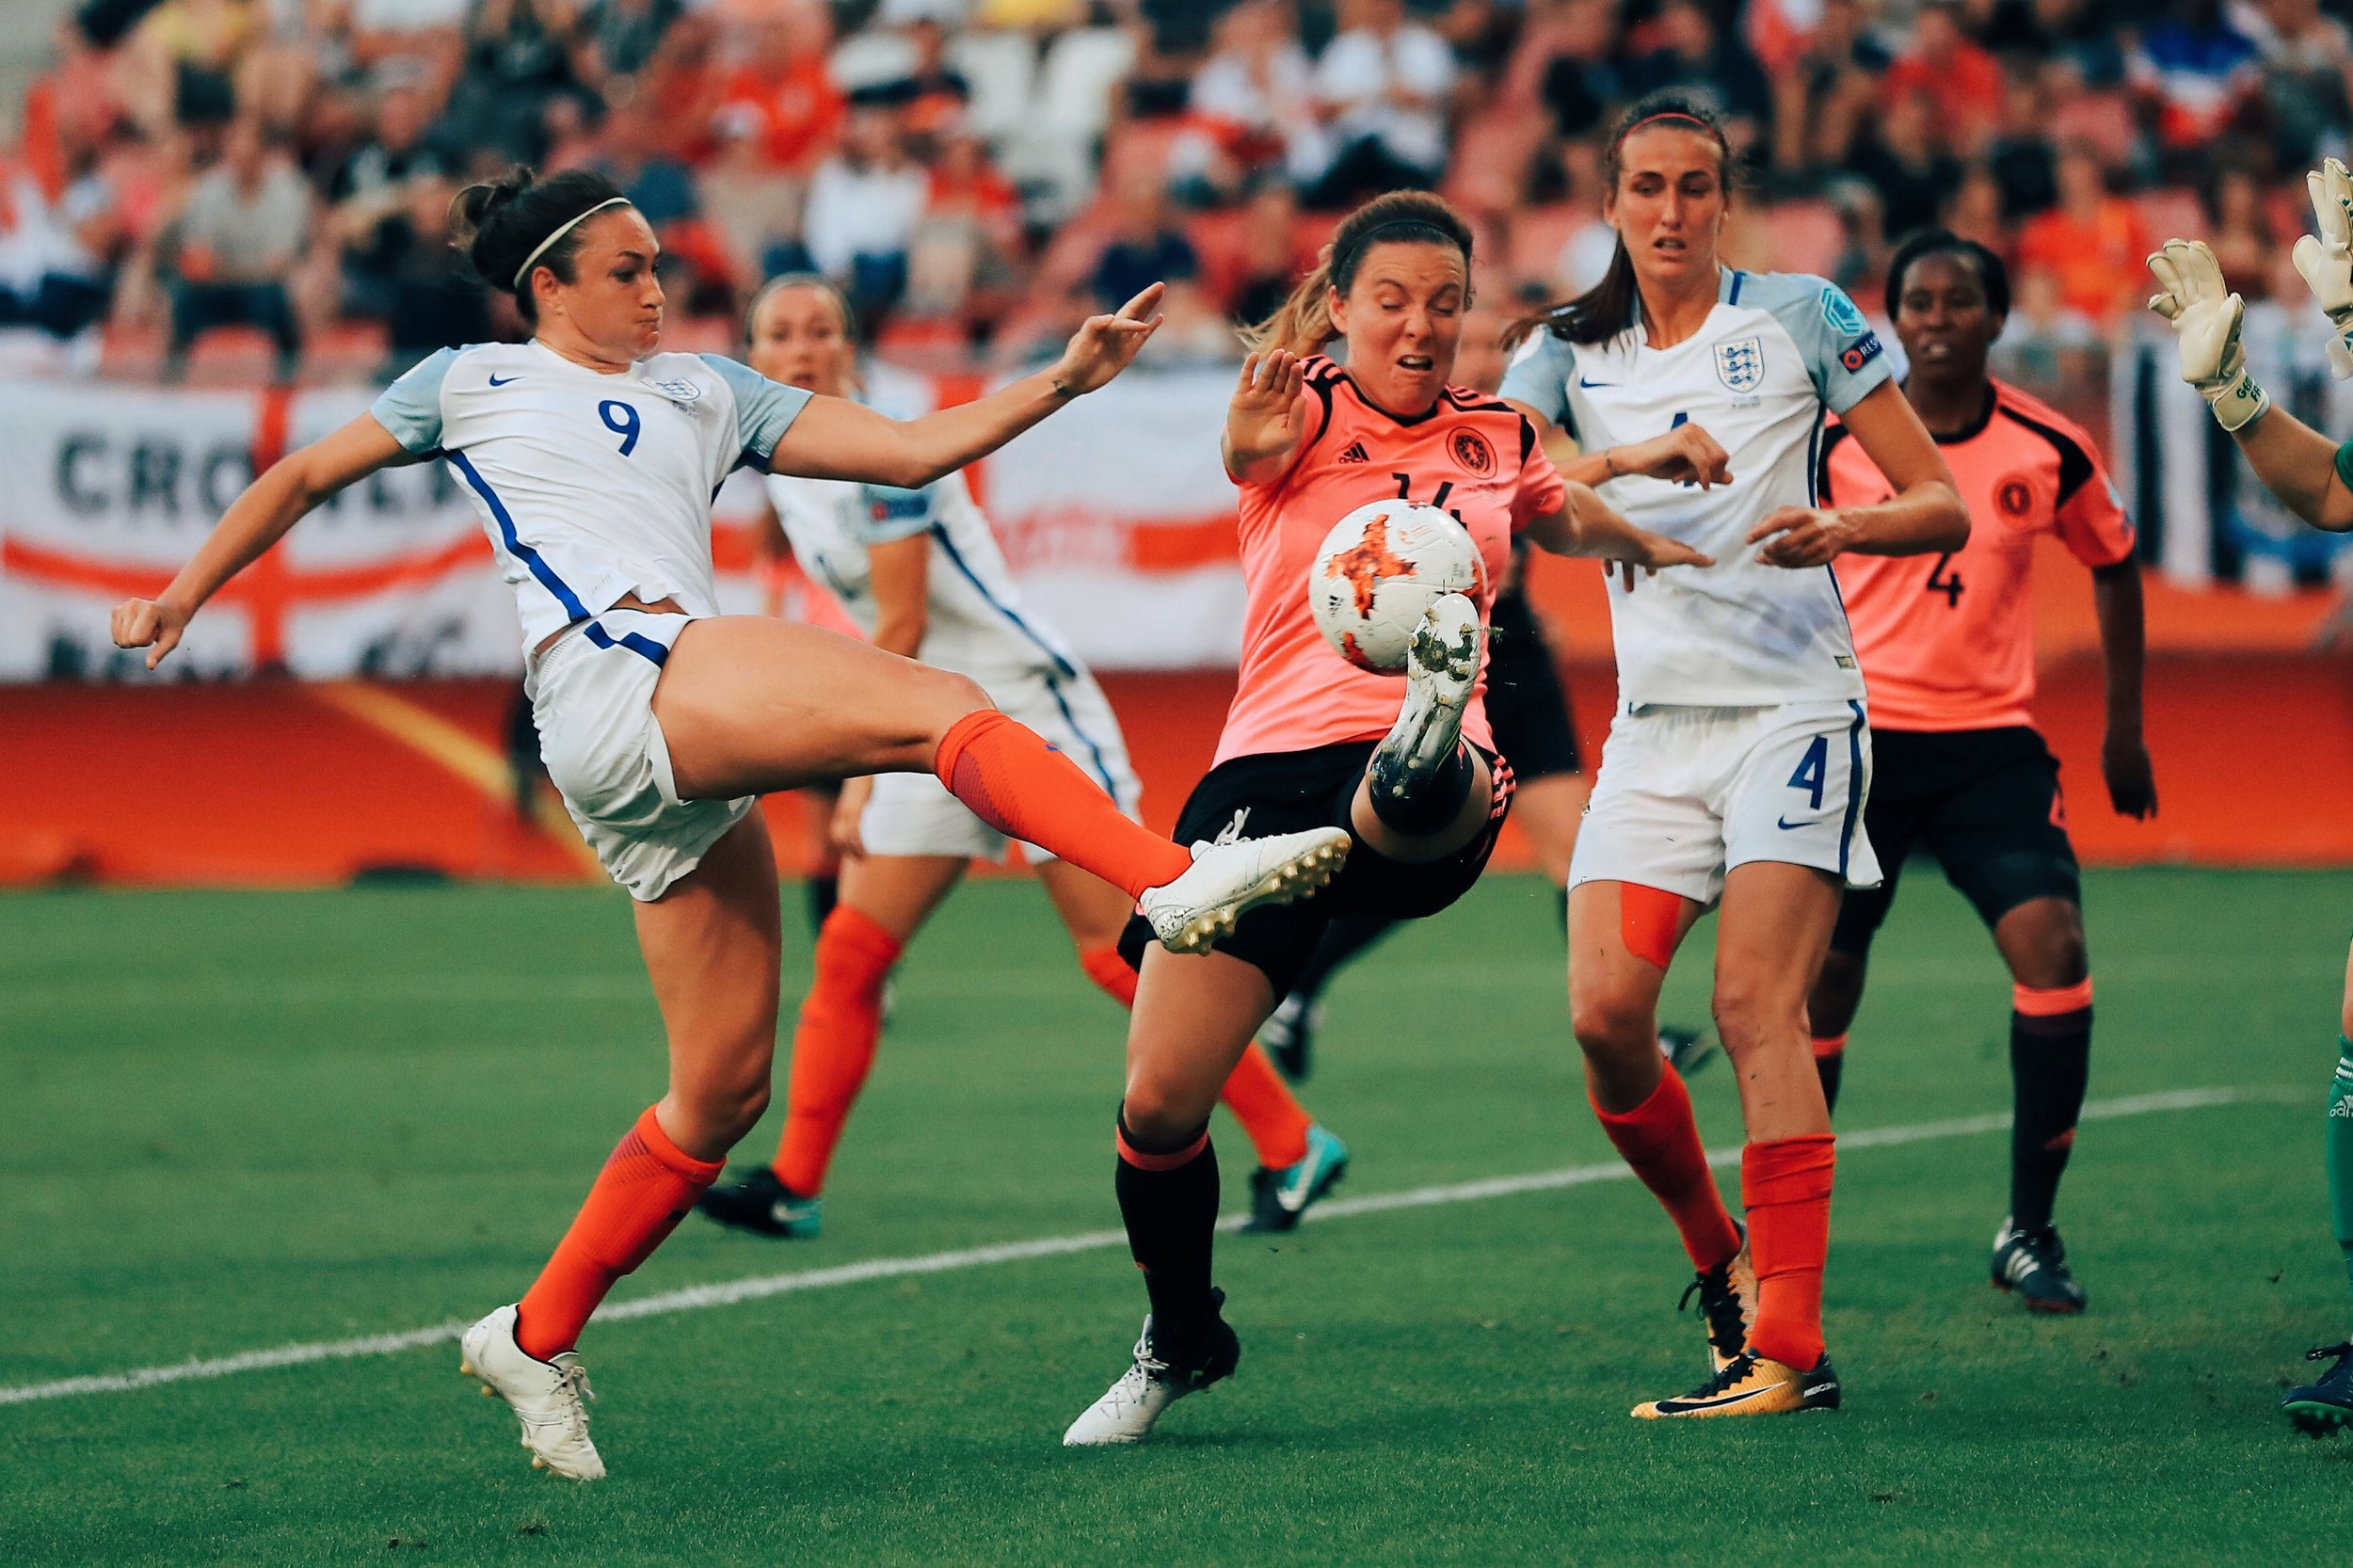 lioness-jodie-taylor-action-woman-football-womens-sport.jpg